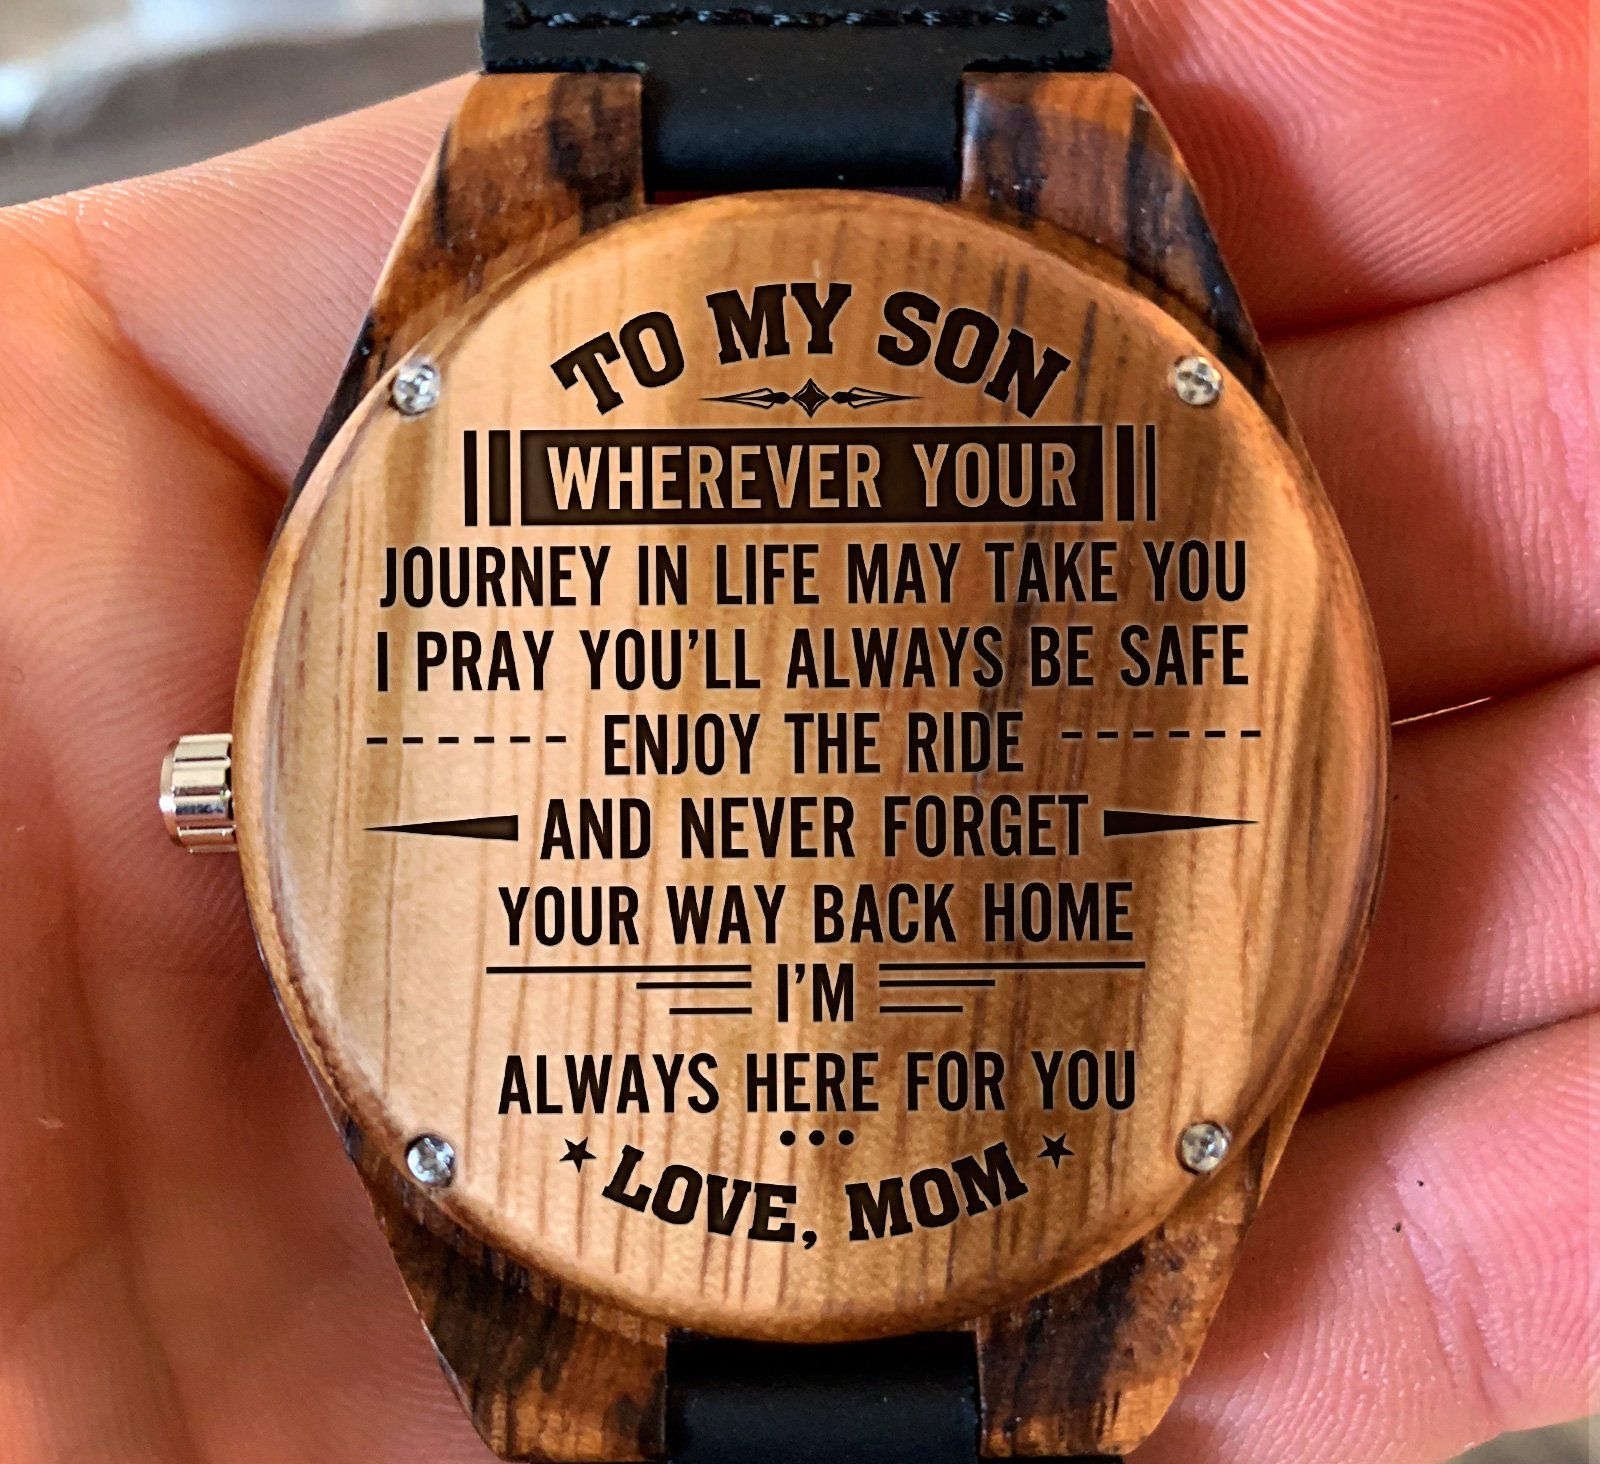 To My Son Wherever Your Journey Takes You Love Mom - Engraved Zebra Watch